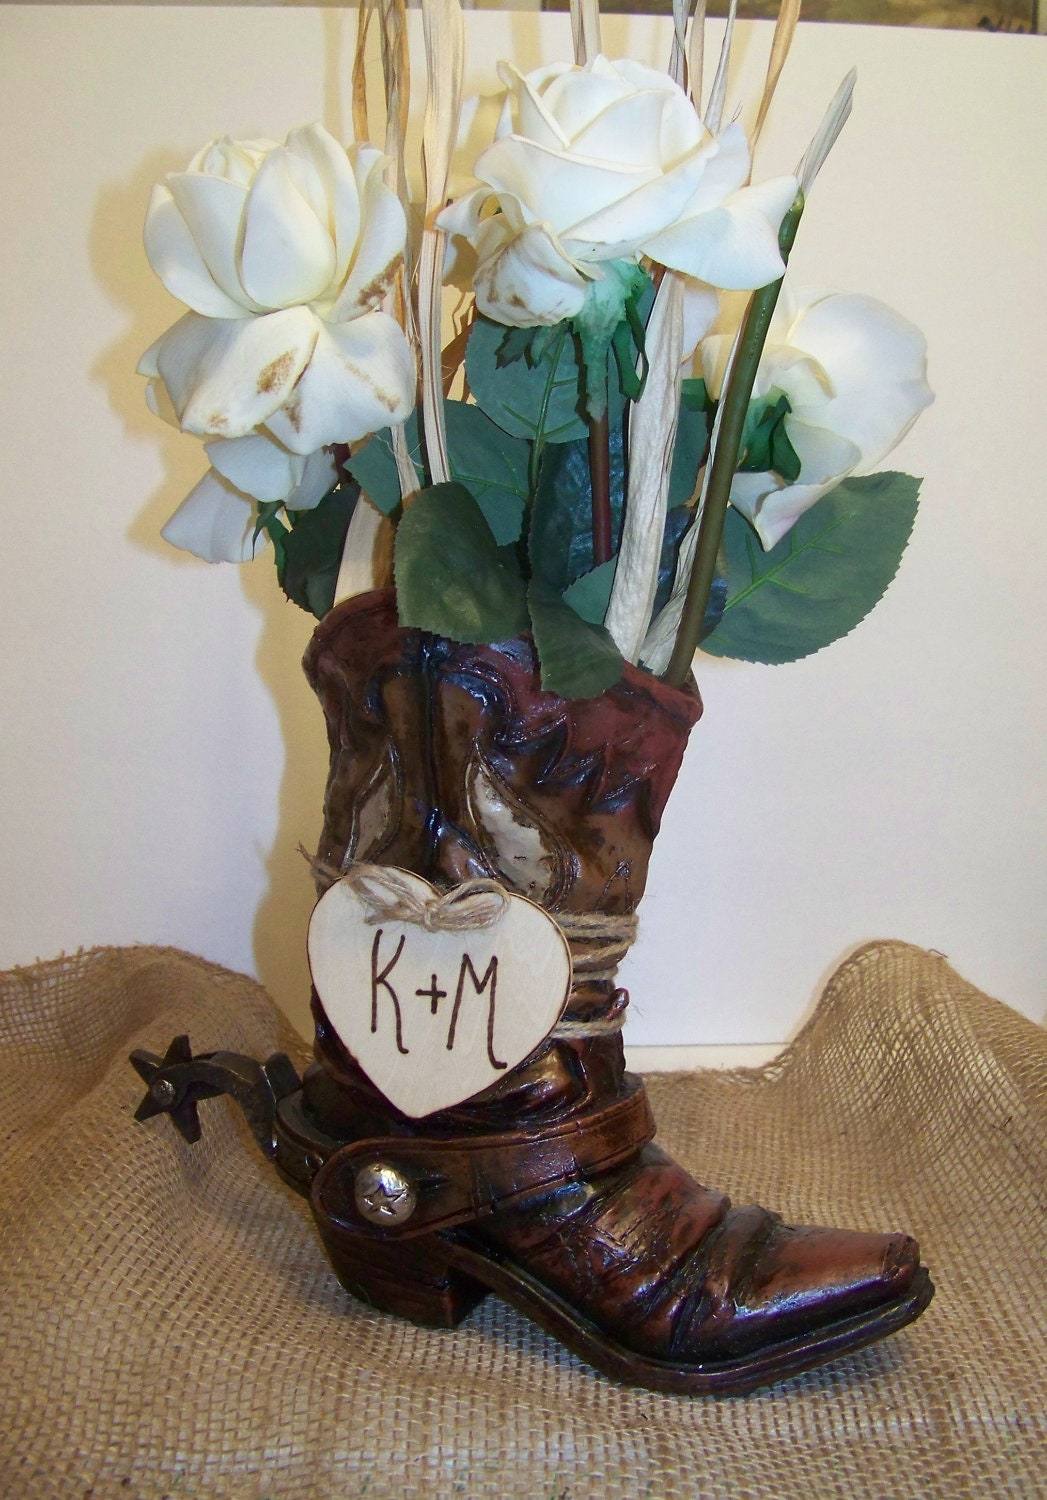 Rustic Wedding Centerpiece-Cowboy Boot Flower Vase with Wooden